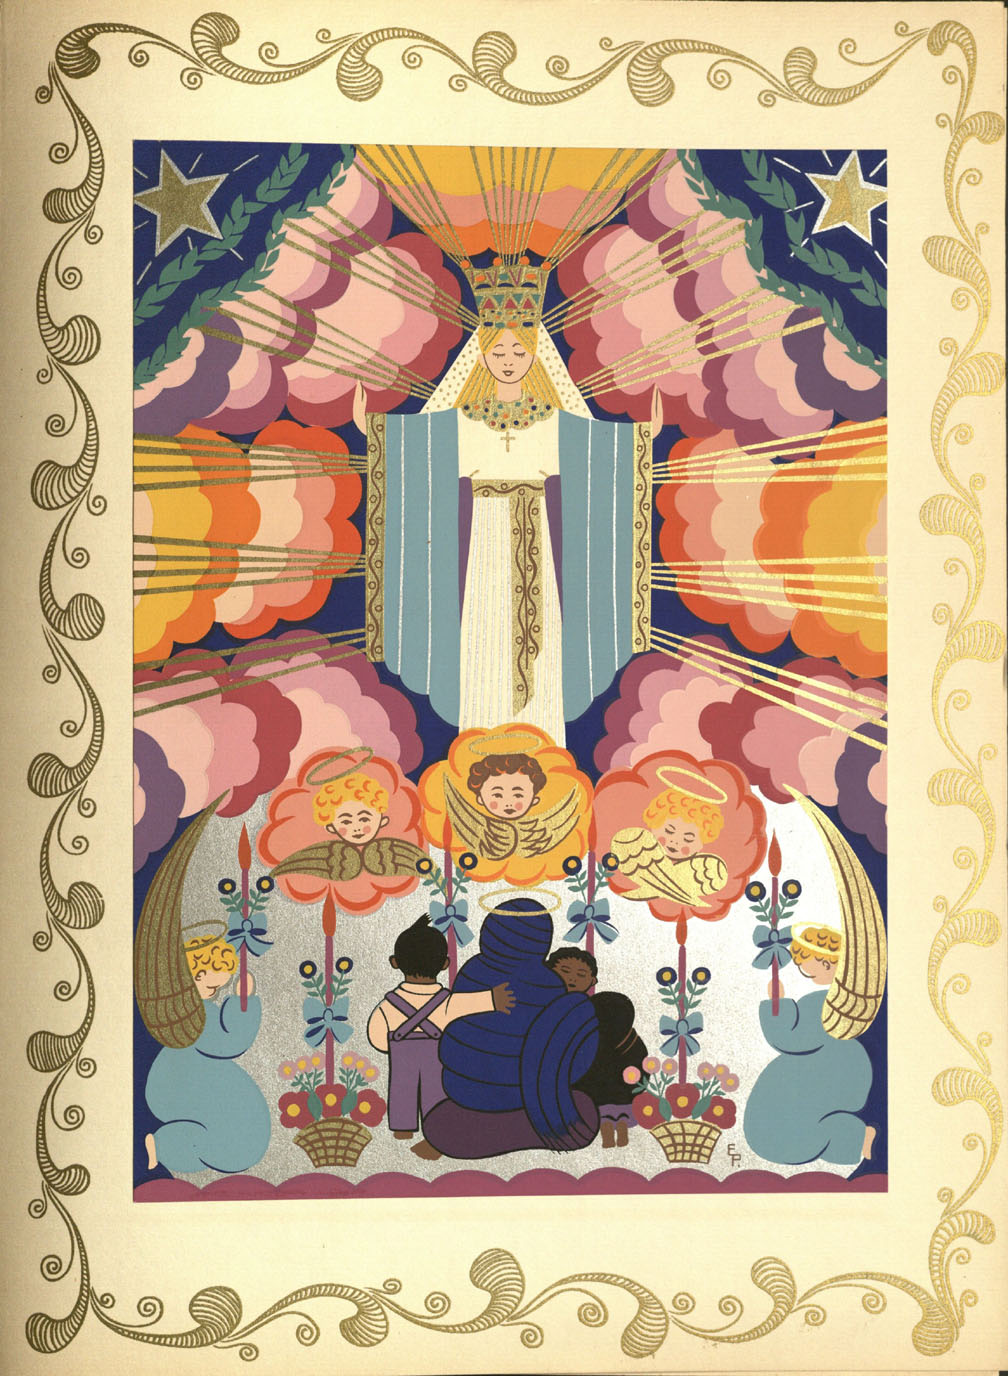 Silkscreen print of an altar scene from 'Mexico in Color' by Elma Pratt